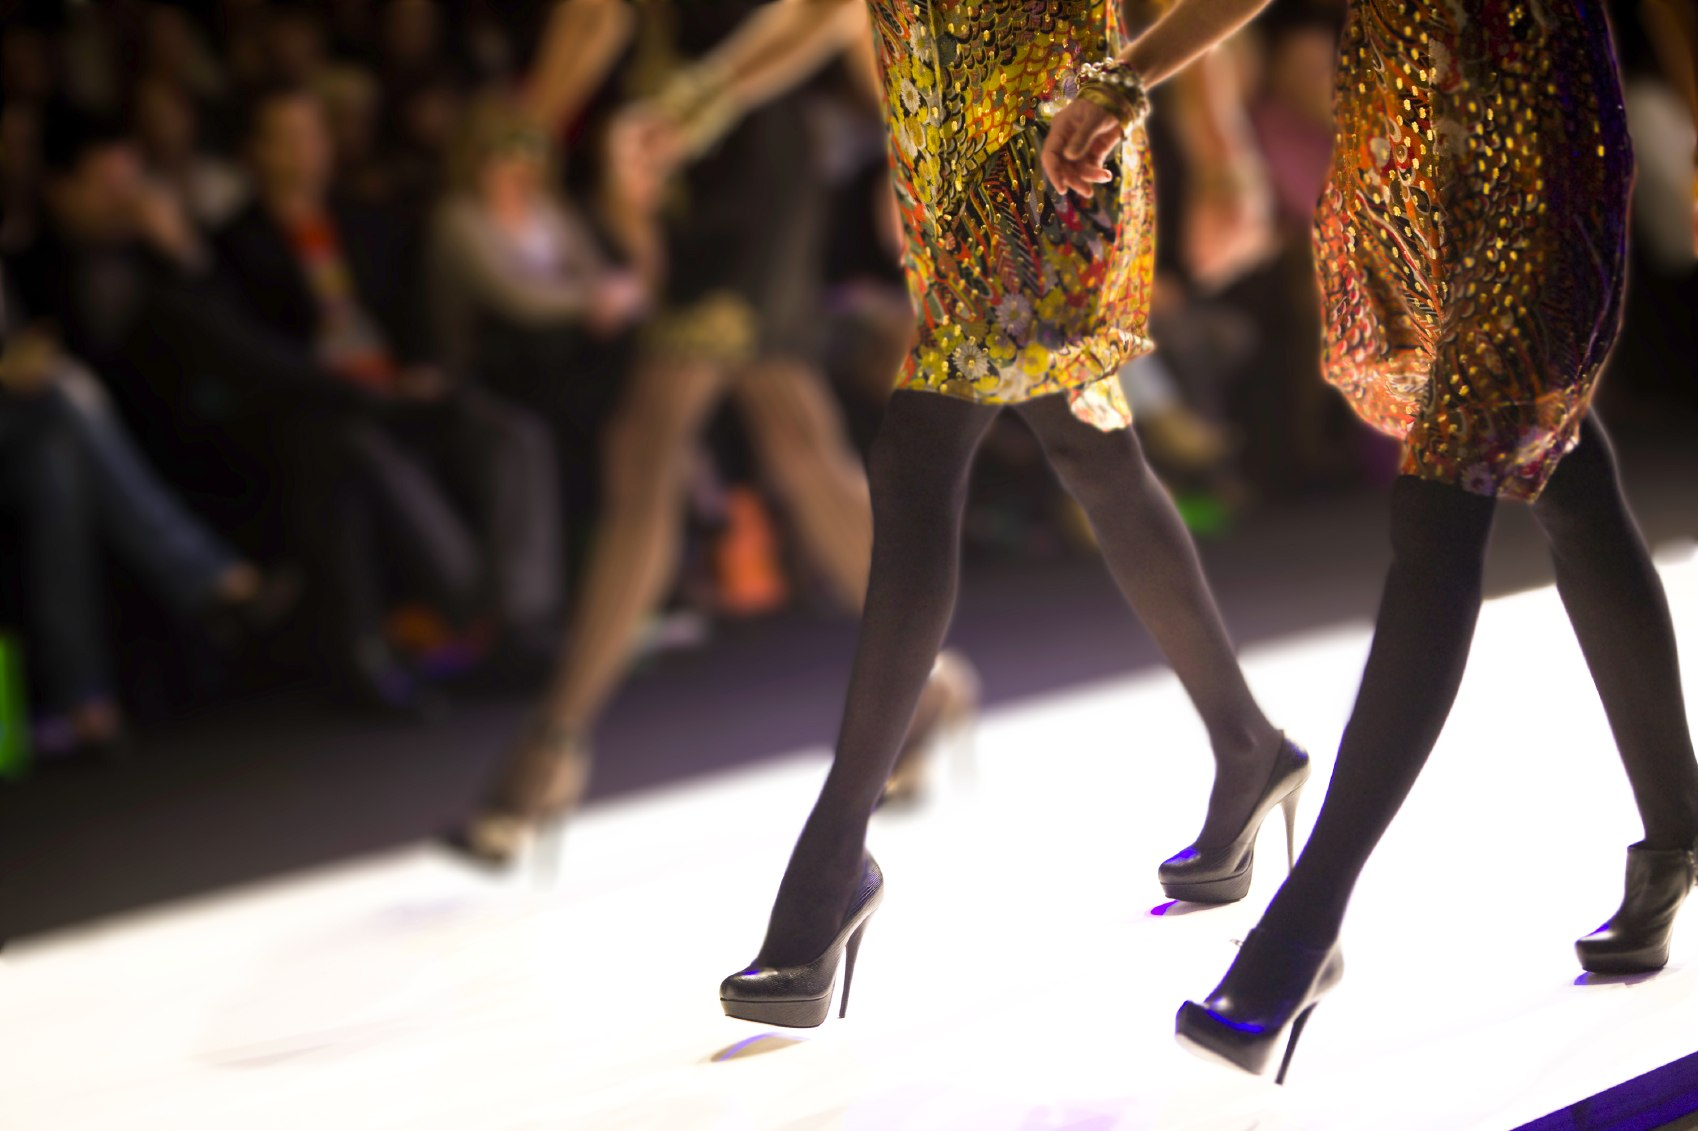 Runway with designer shoes and boots